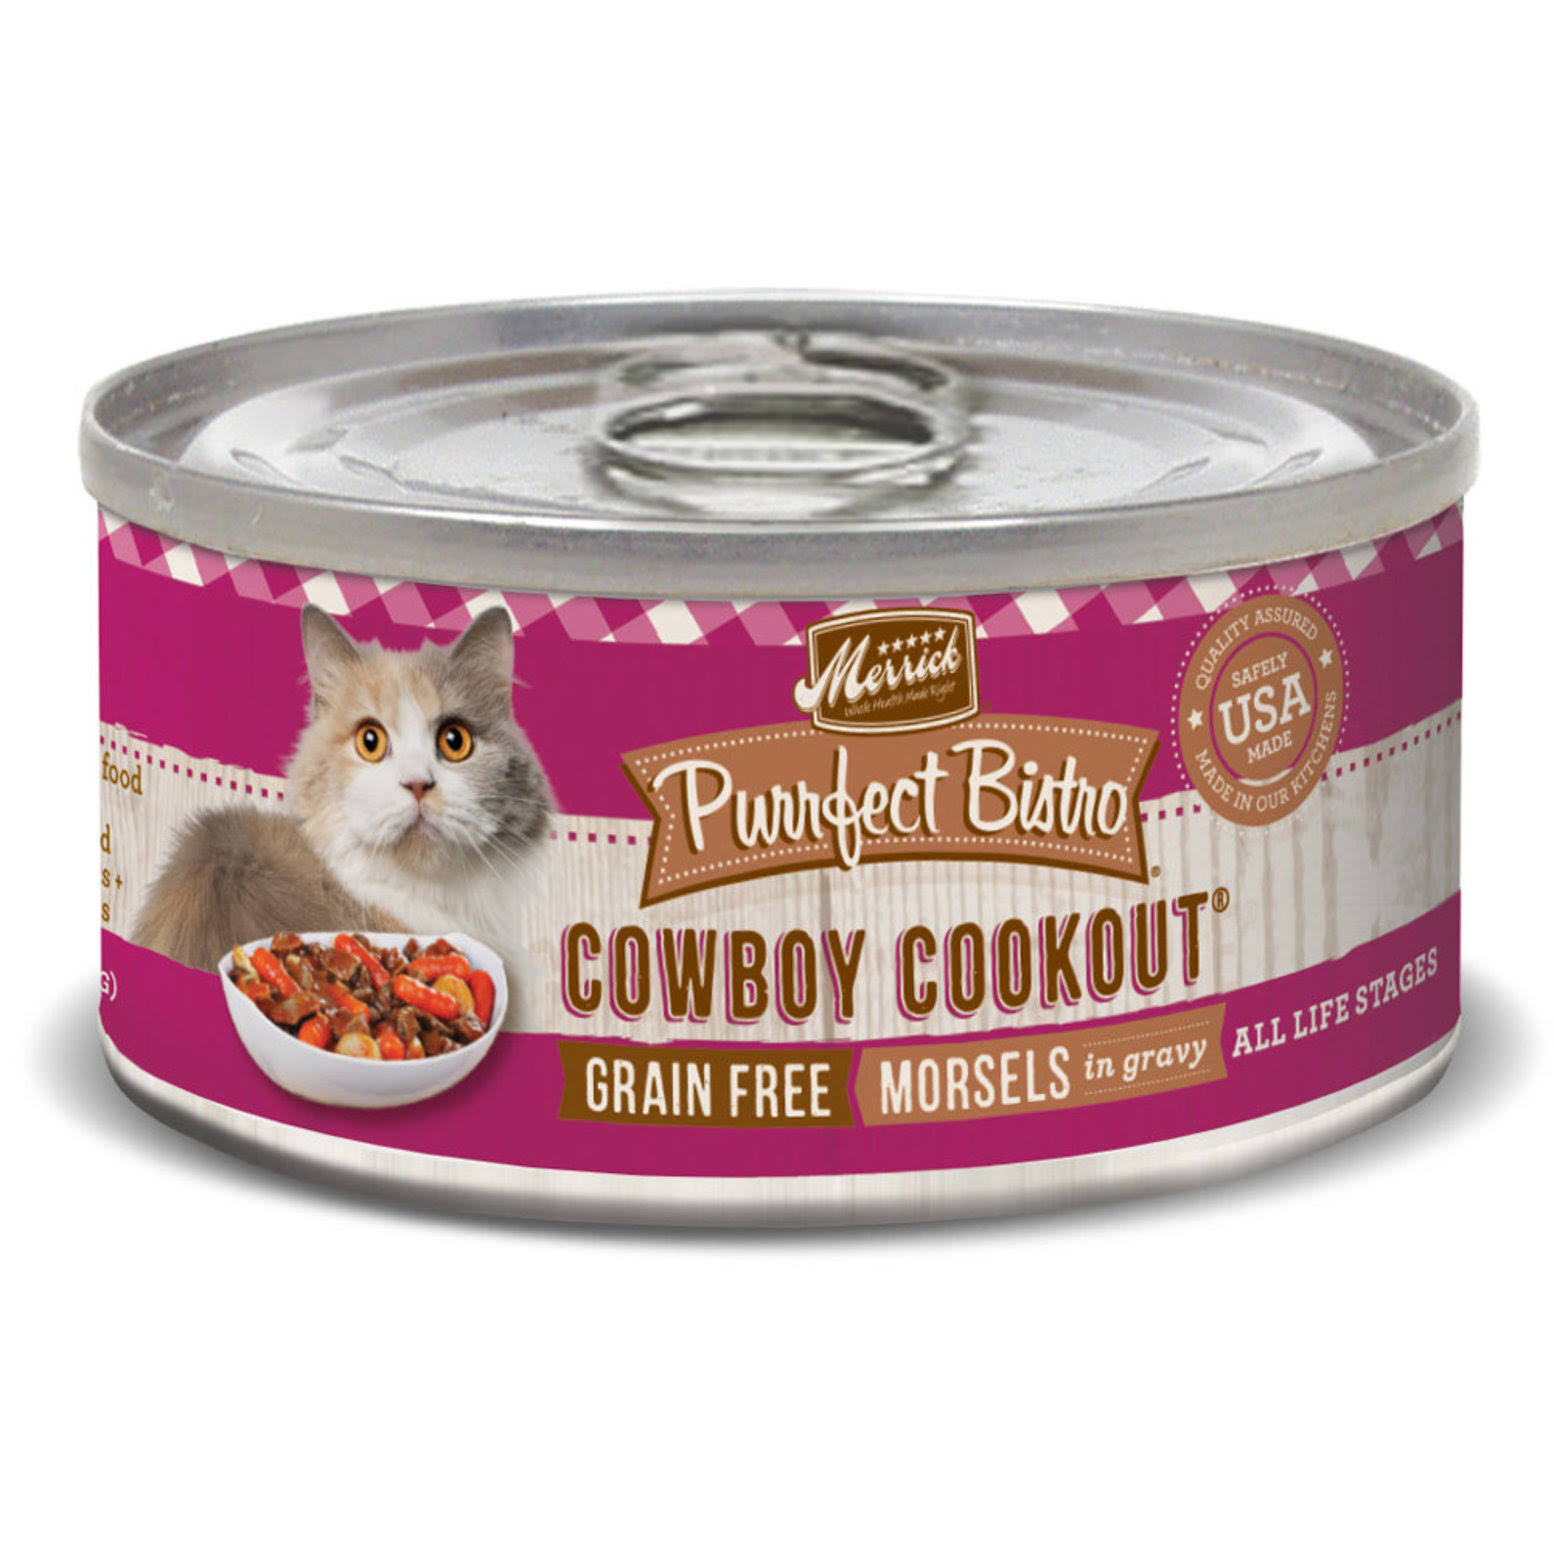 Merrick Cowboy Cookout Meat - 5 1/2oz, 24 Count